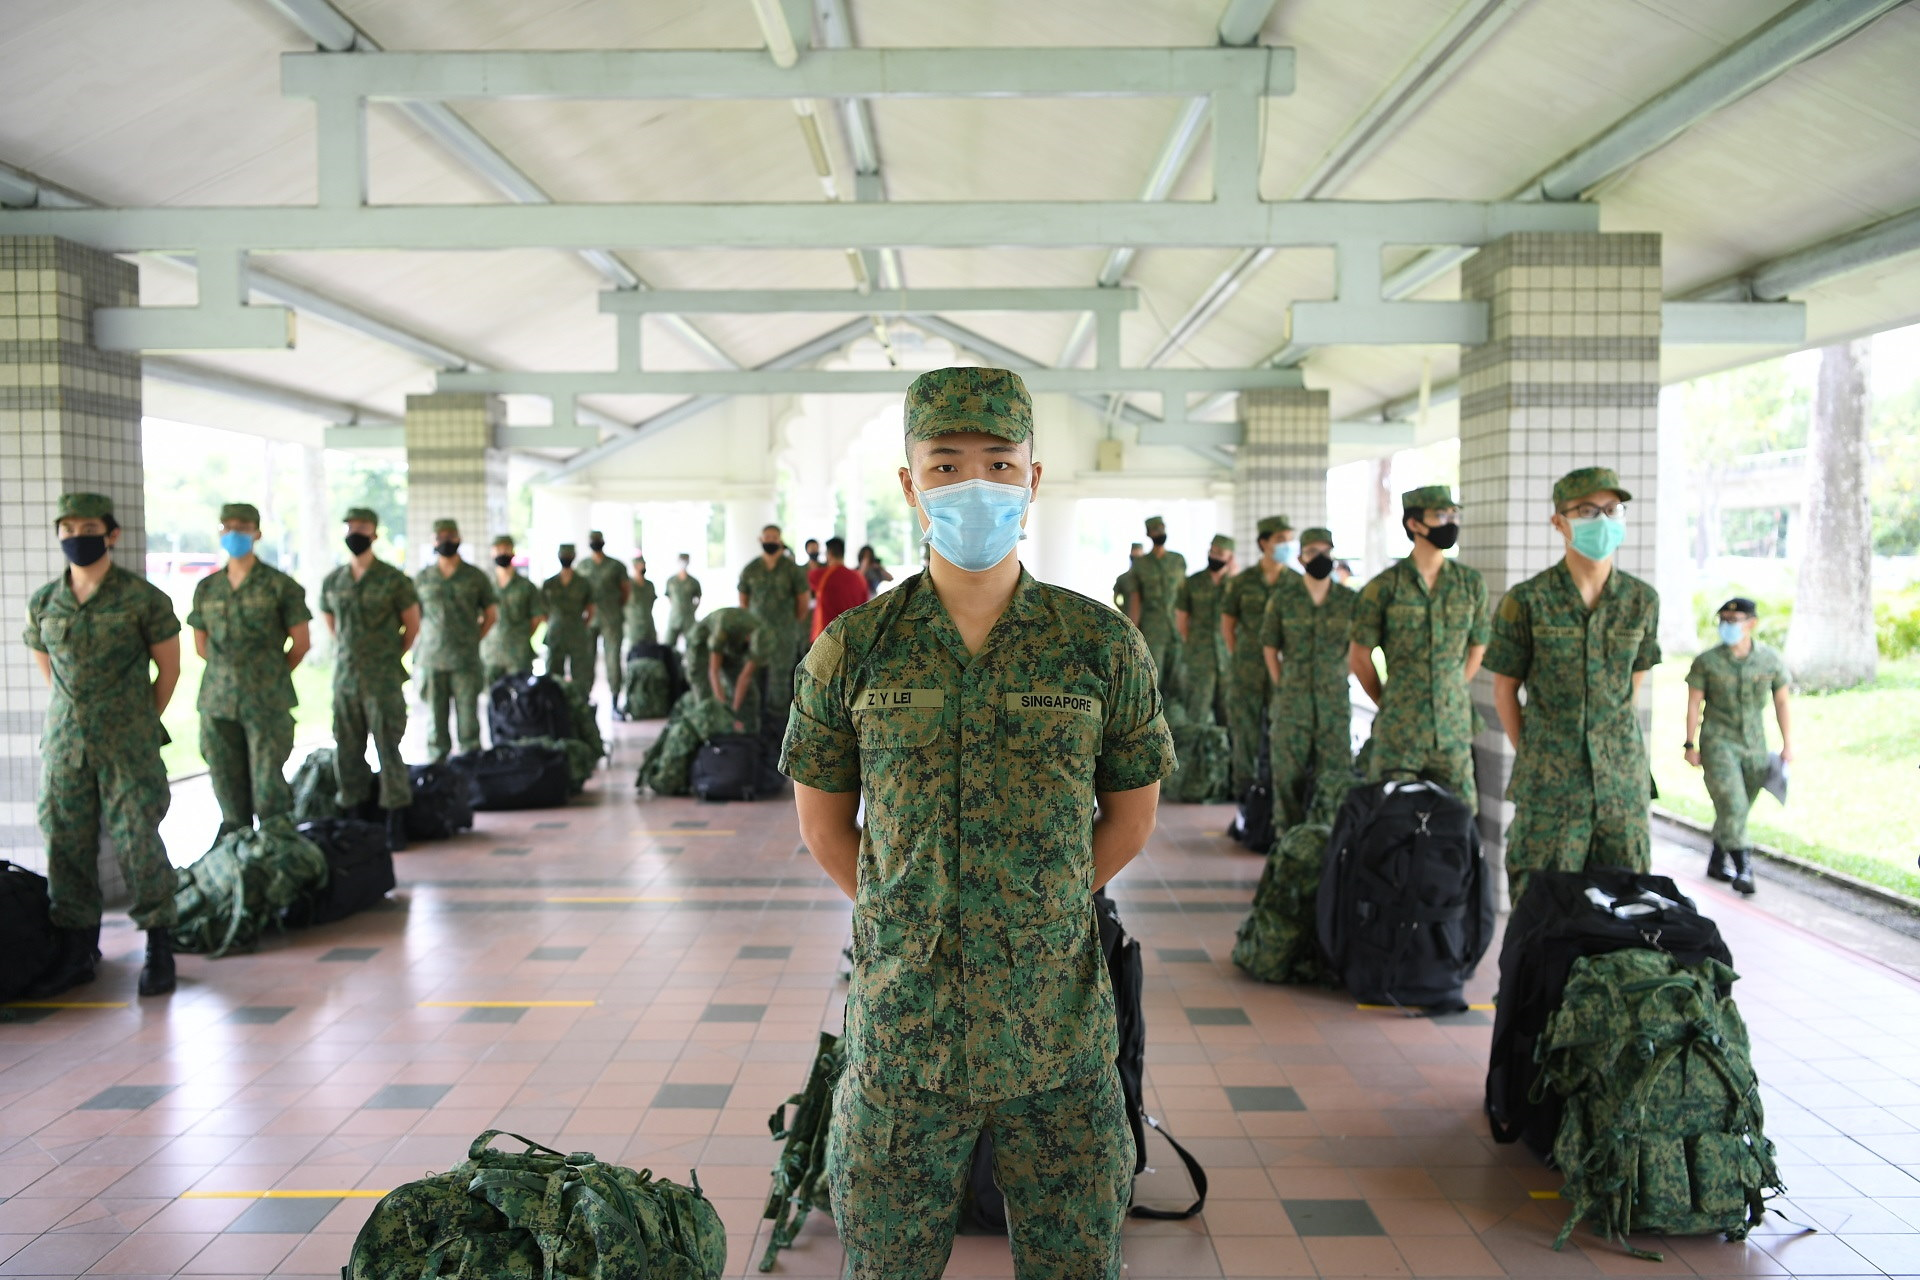 BMT resumes with stricter checks when booking in